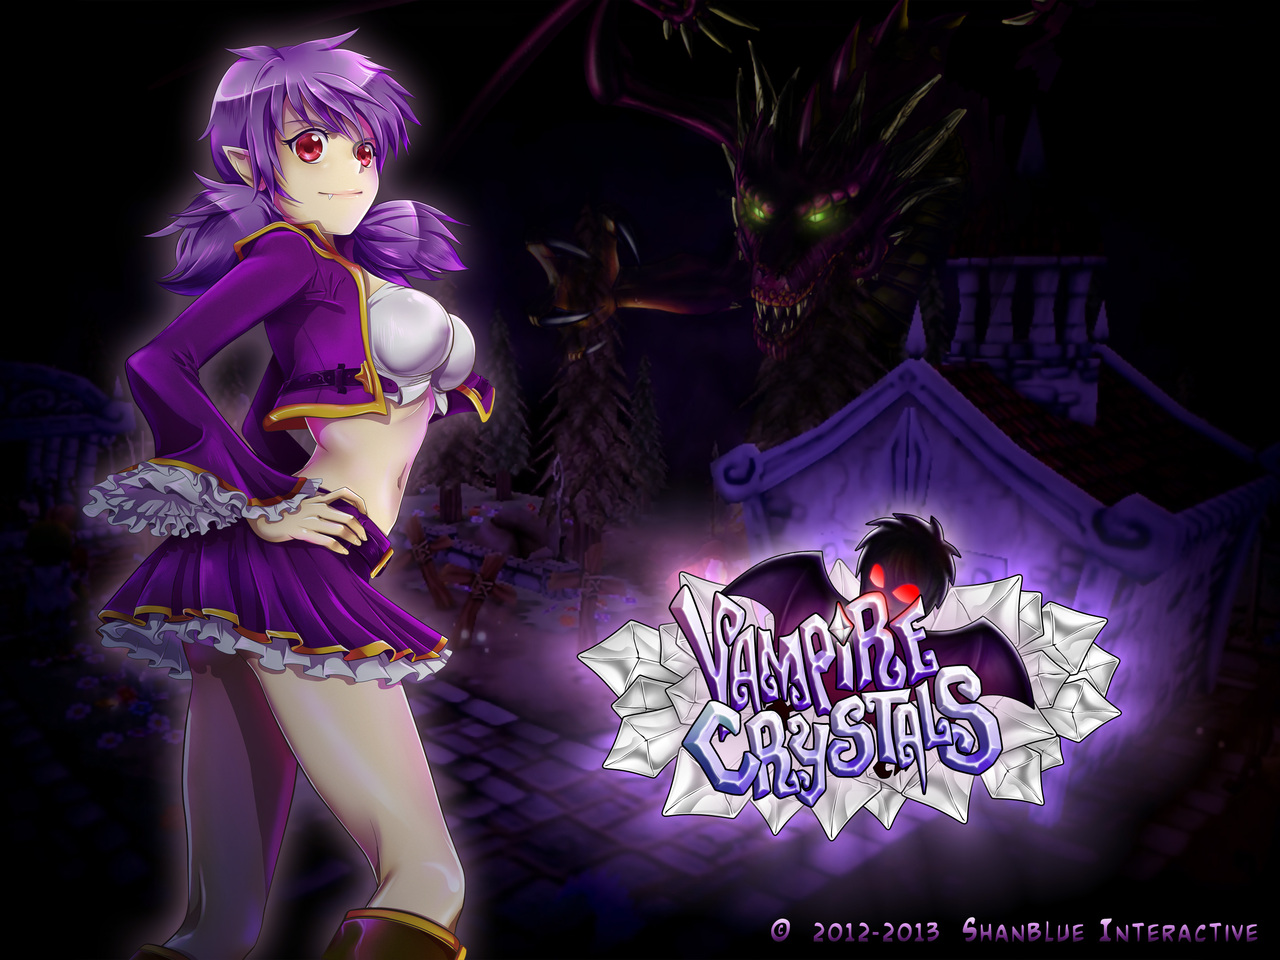 jeuxvideo.com Vampire Crystals - Wii Image 10 sur 157